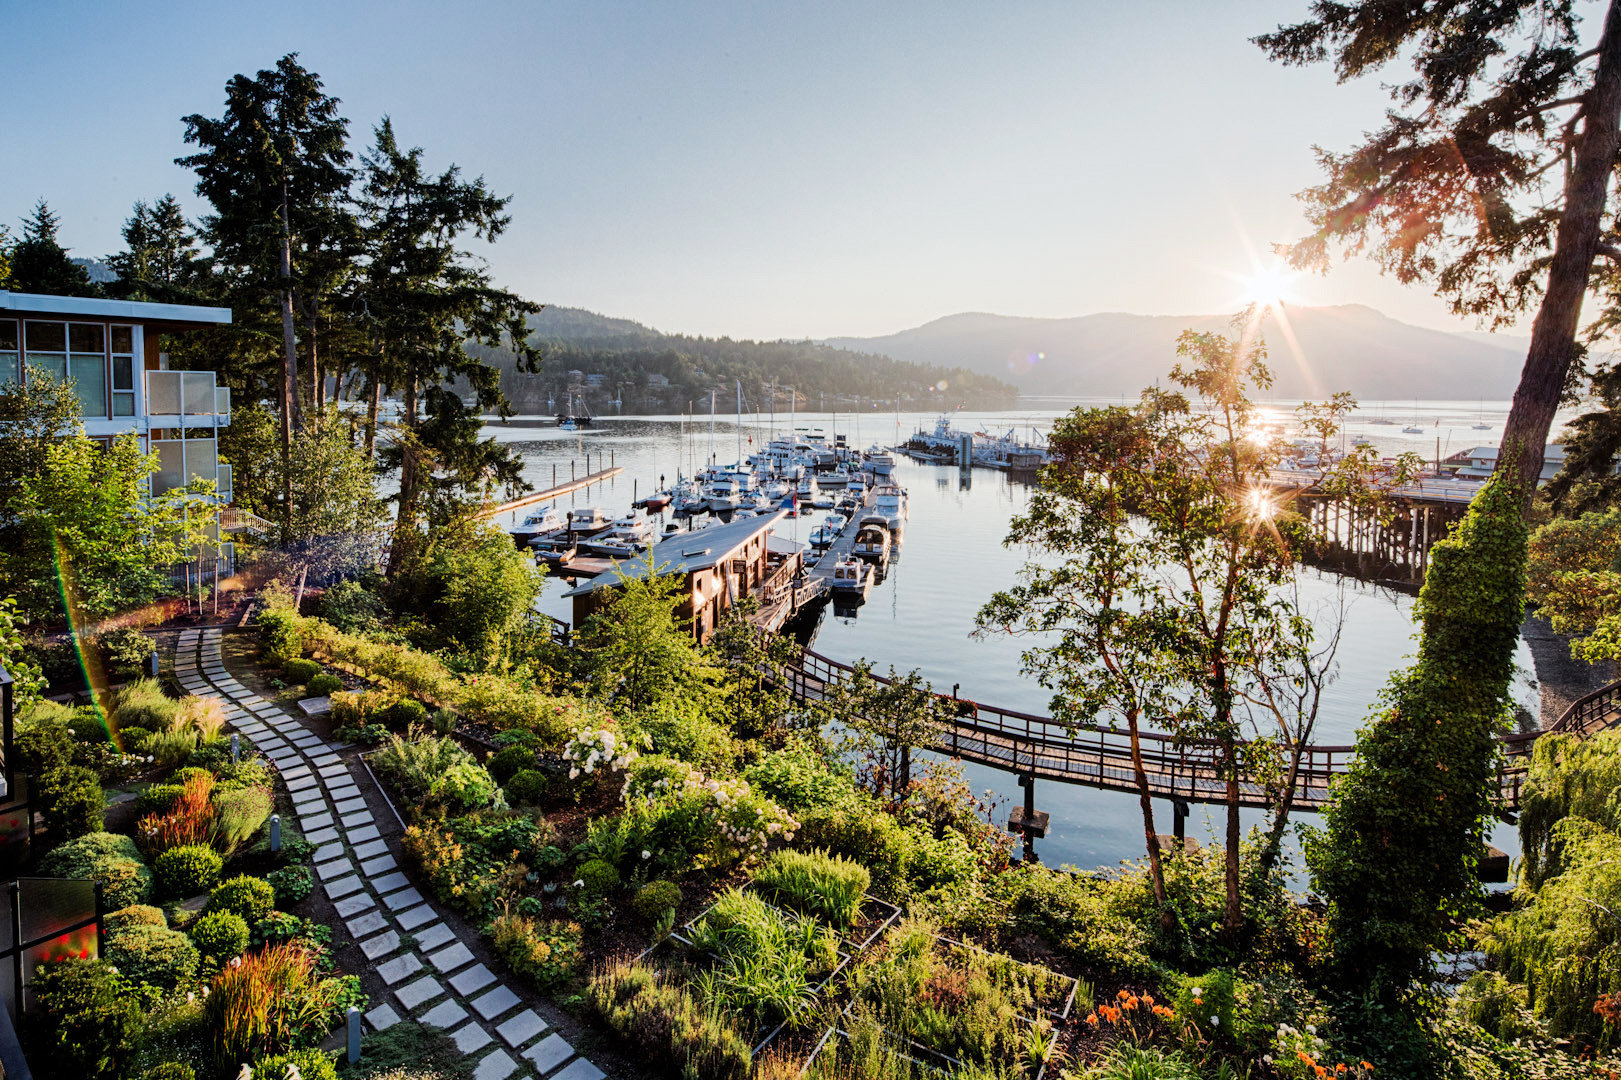 Boat Modern Outdoor Activities Outdoors Resort Romantic Waterfront tree sky River landscape Lake cityscape flower aerial photography plant roller coaster line ride